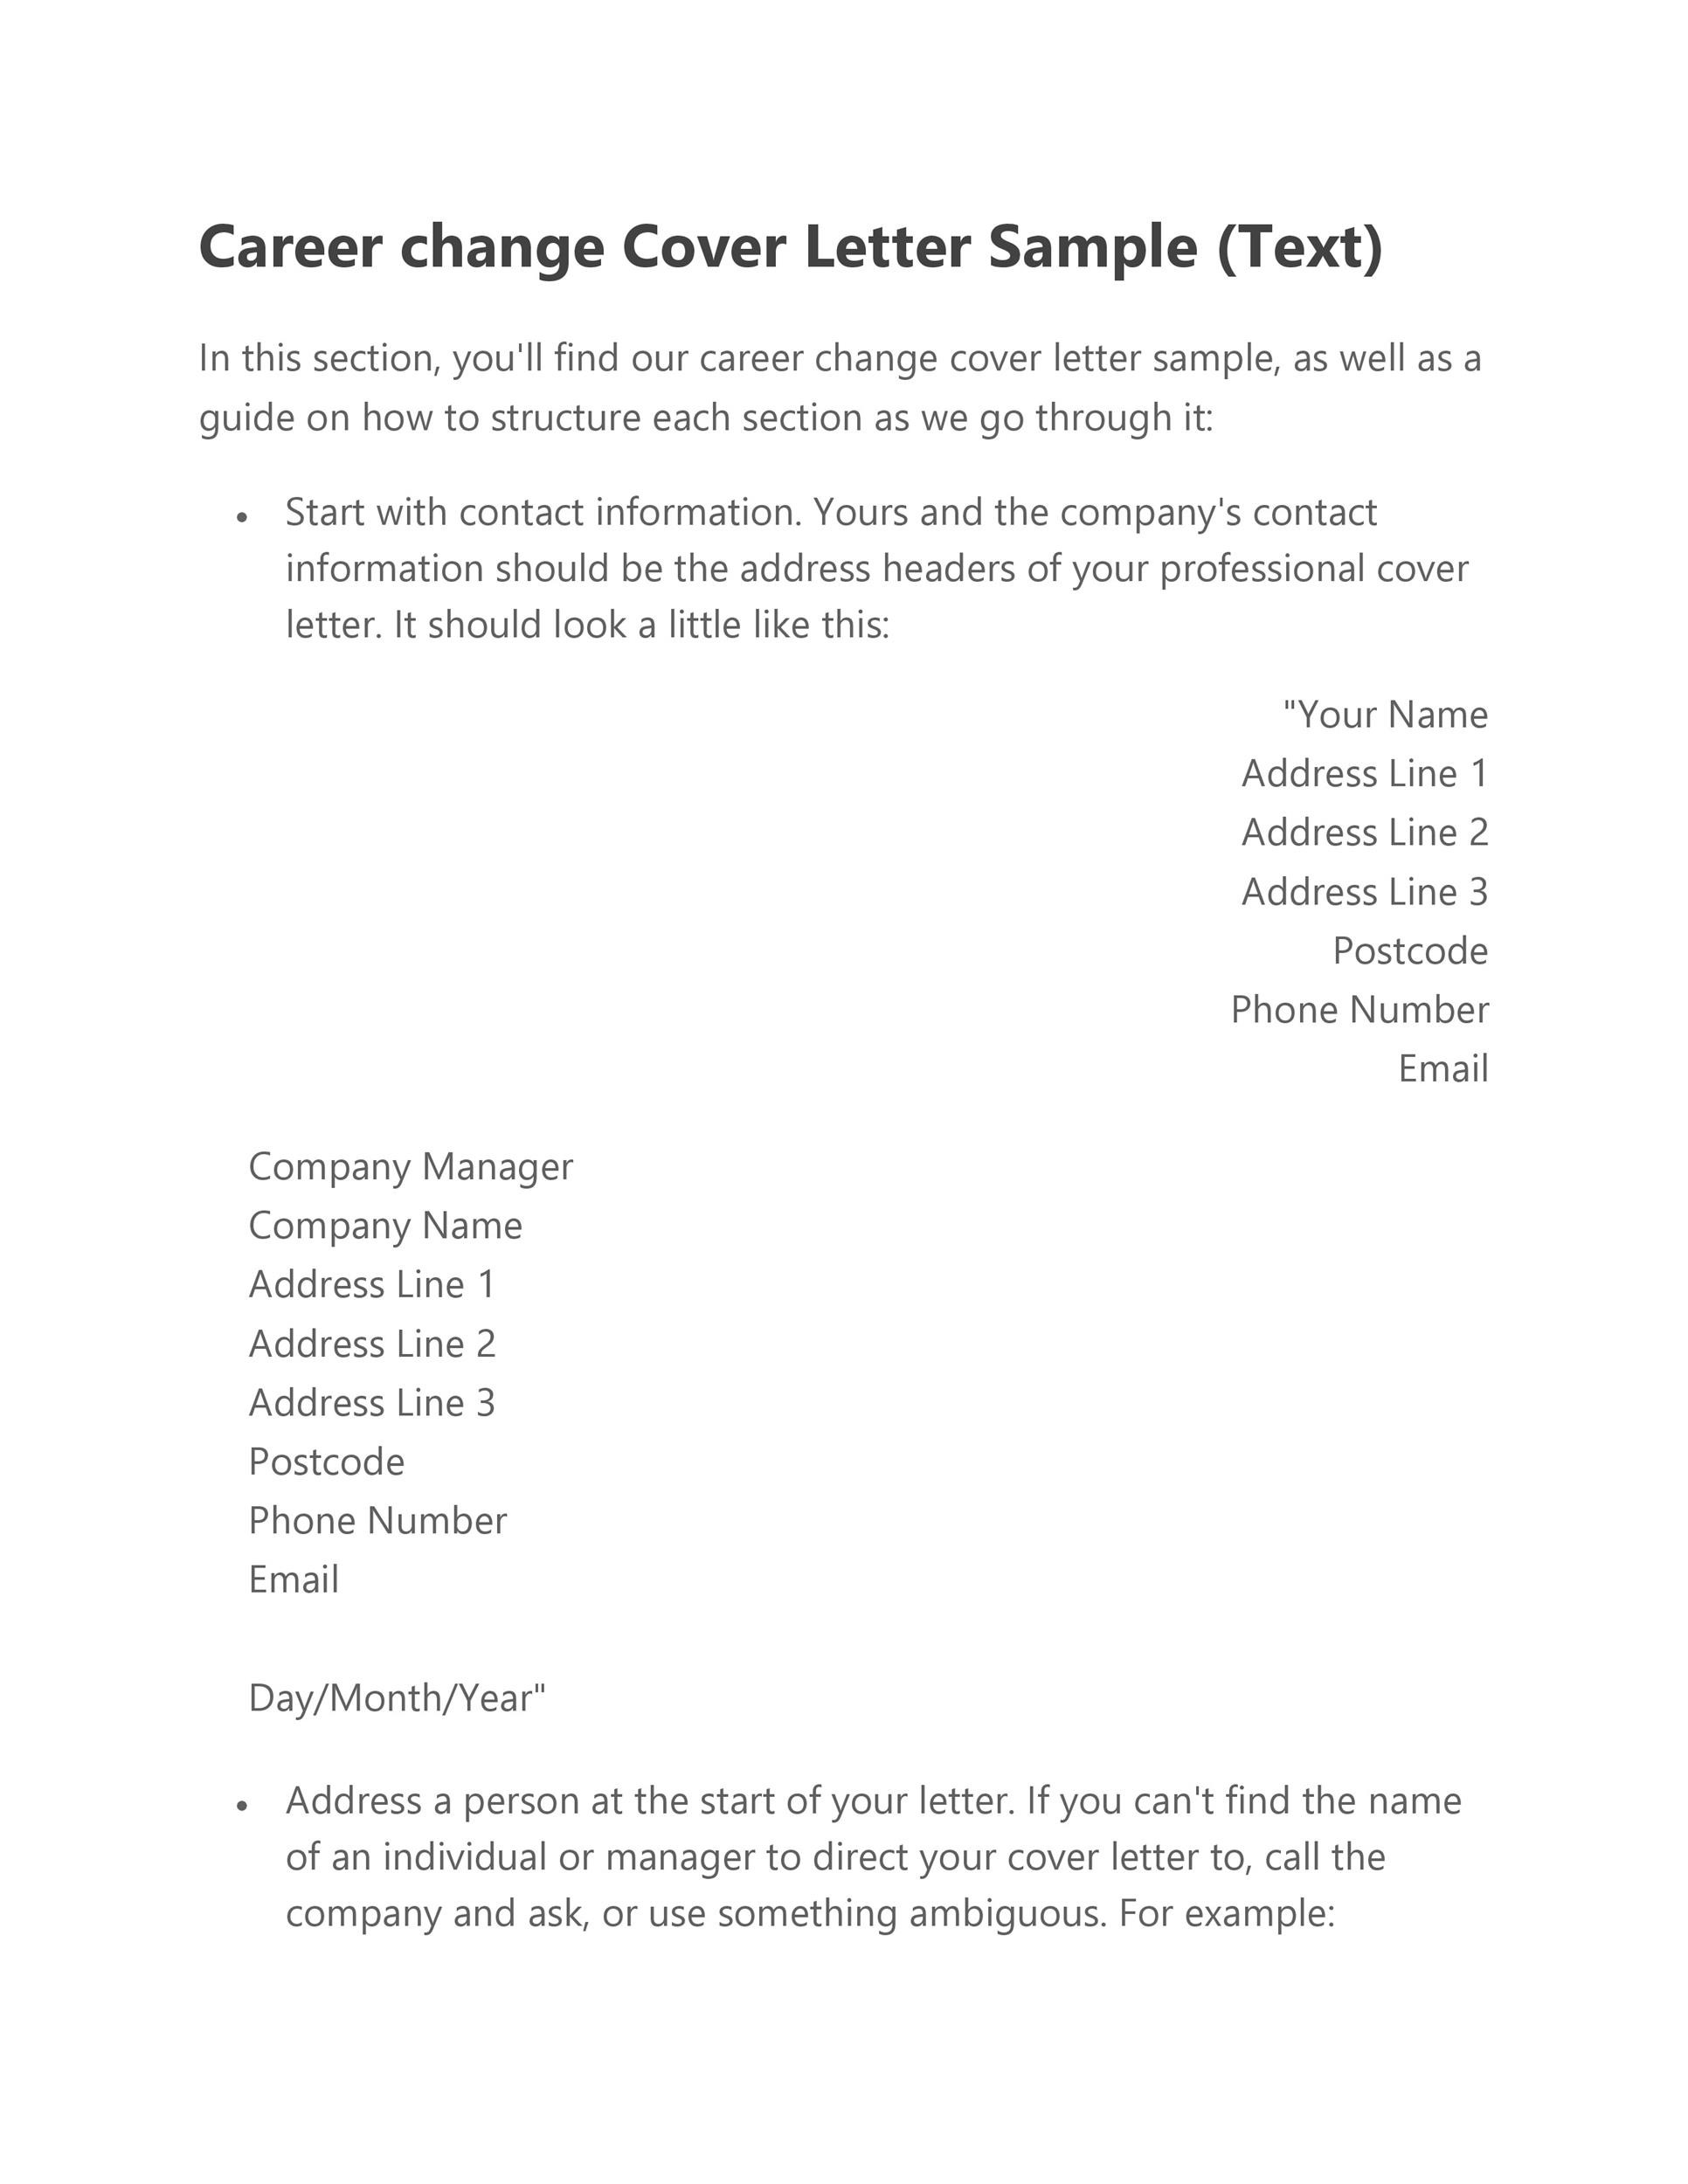 39 Professional Career Change Cover Letters ᐅ Template Lab